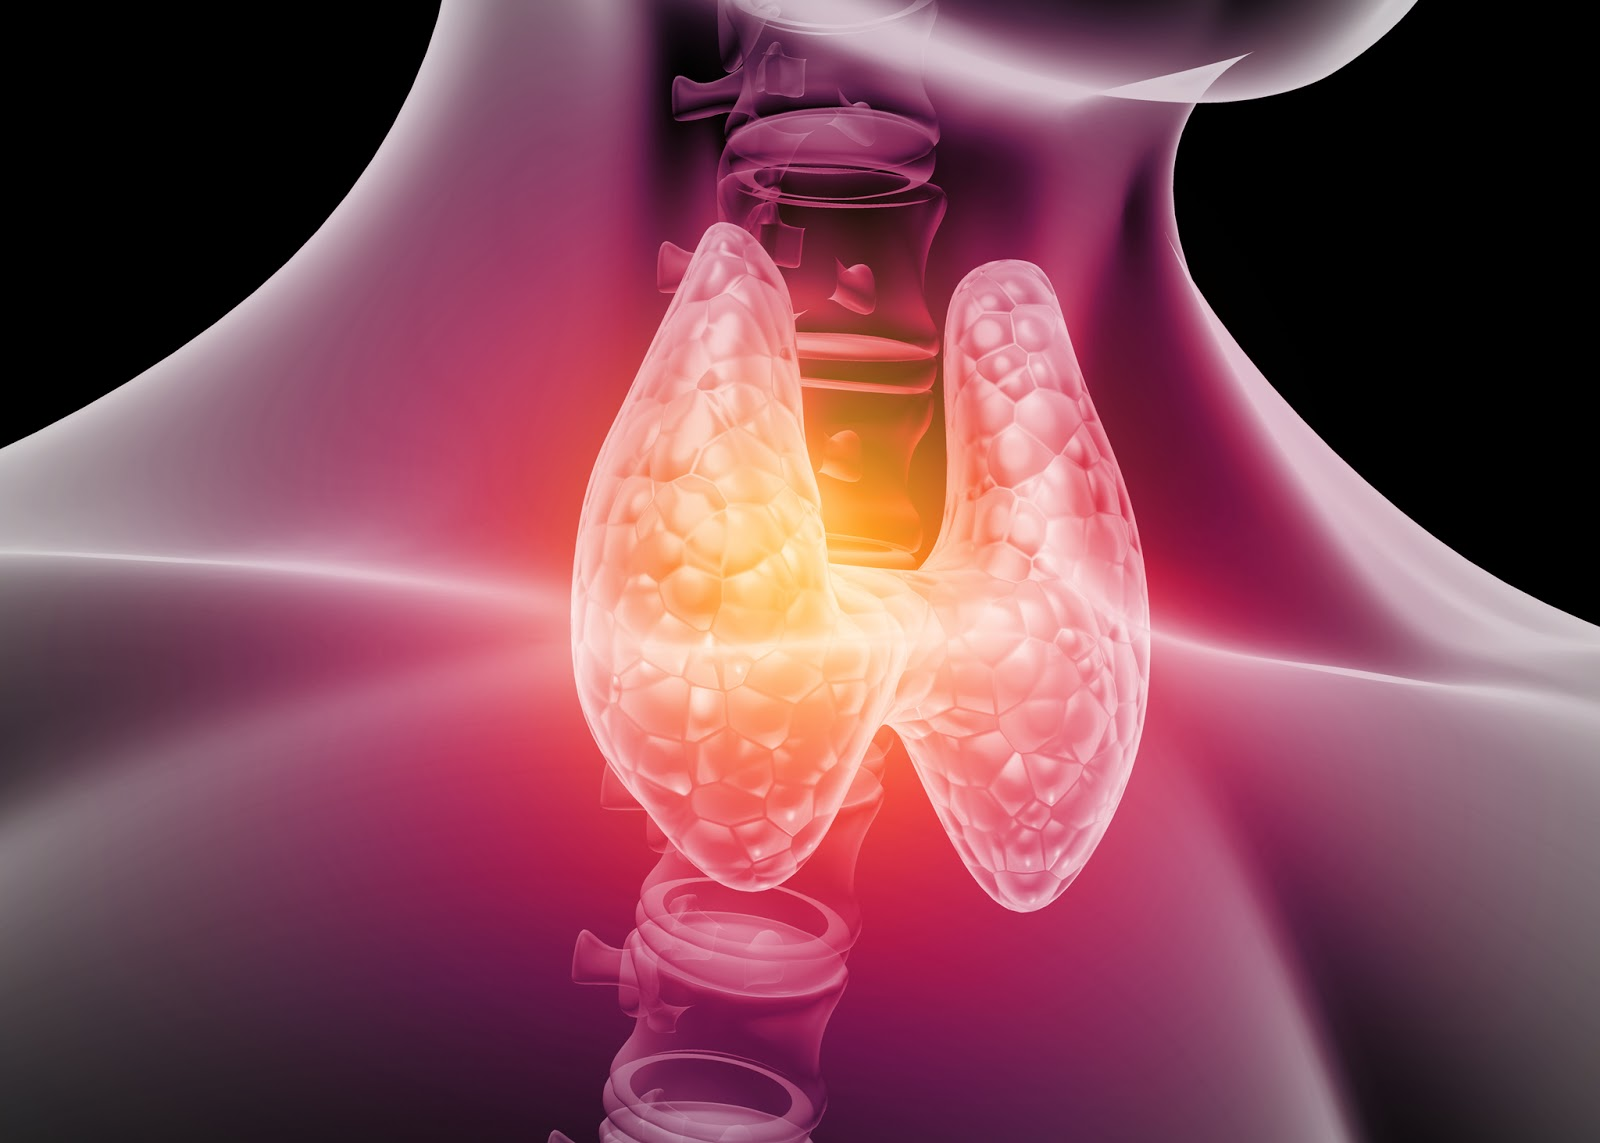 What are the early warning signs of thyroid problems?